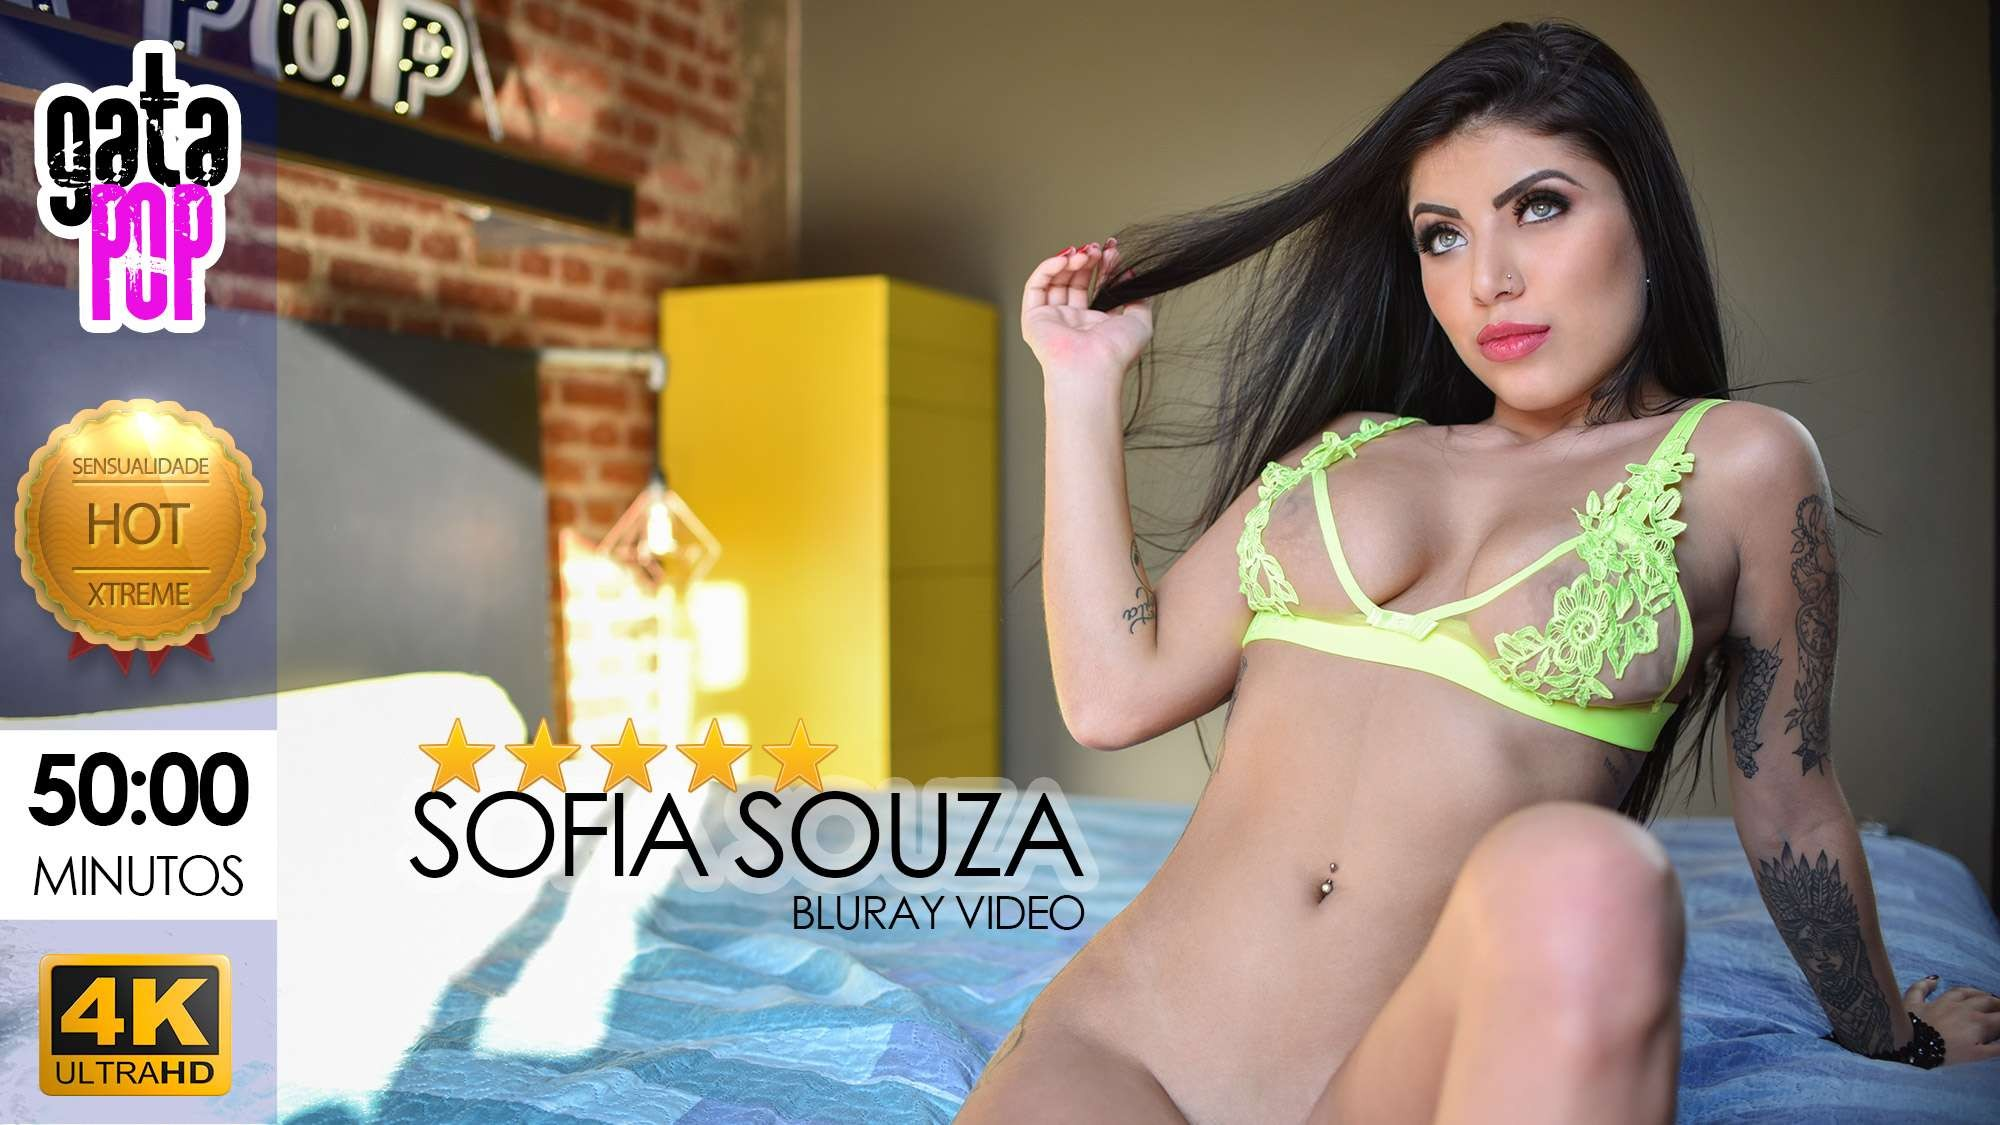 Sofia Souza - Bluray